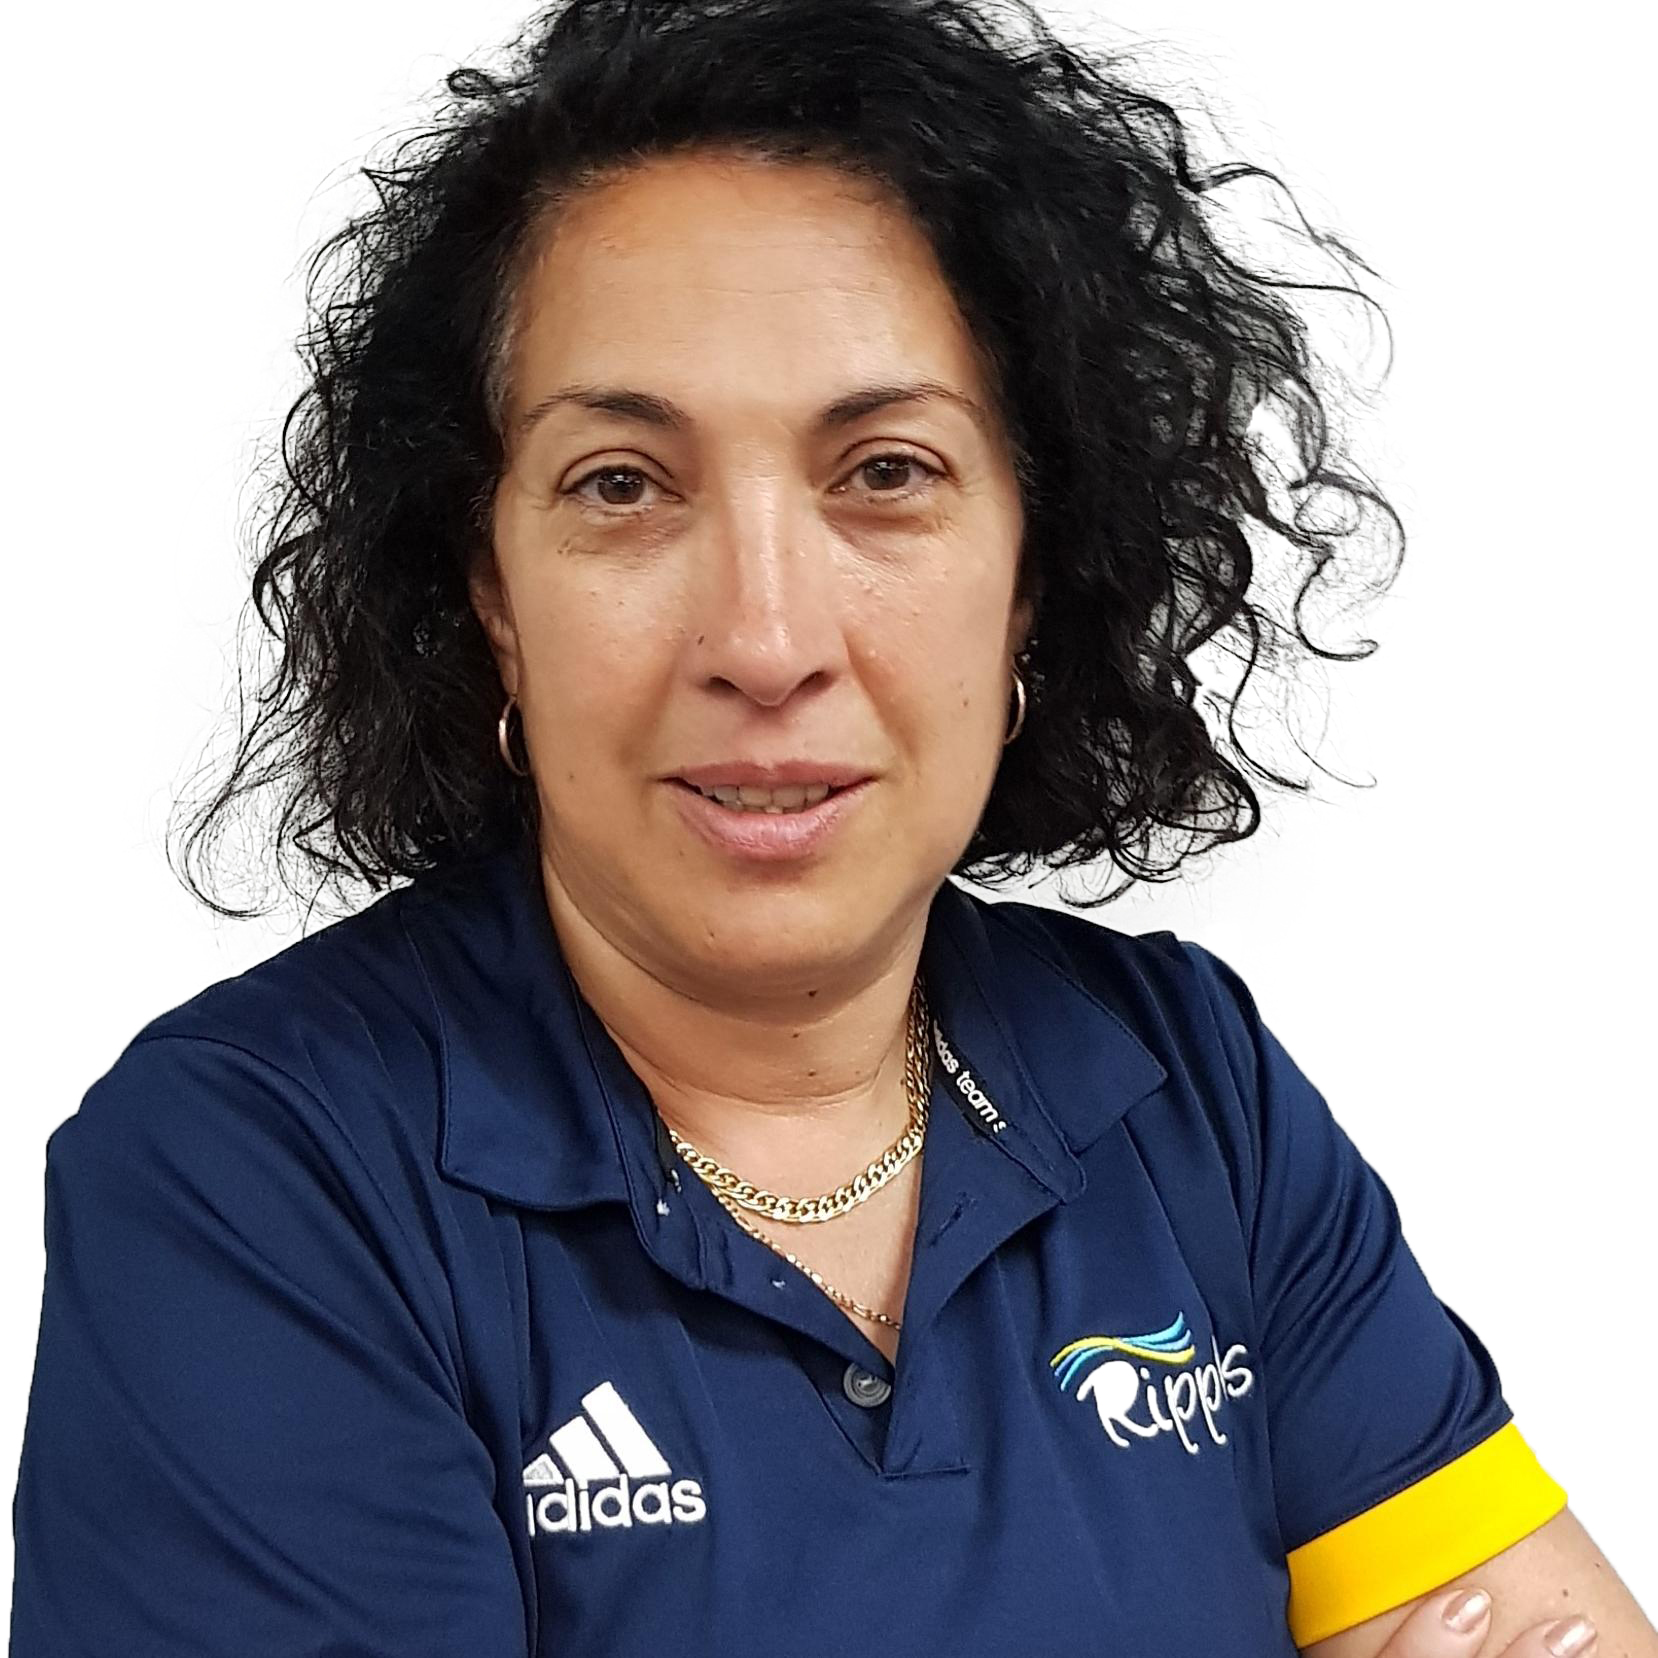 MARIA TIEMS - Fitness Professional / Weight Management Therapist, Owner & Operator of PT with MT